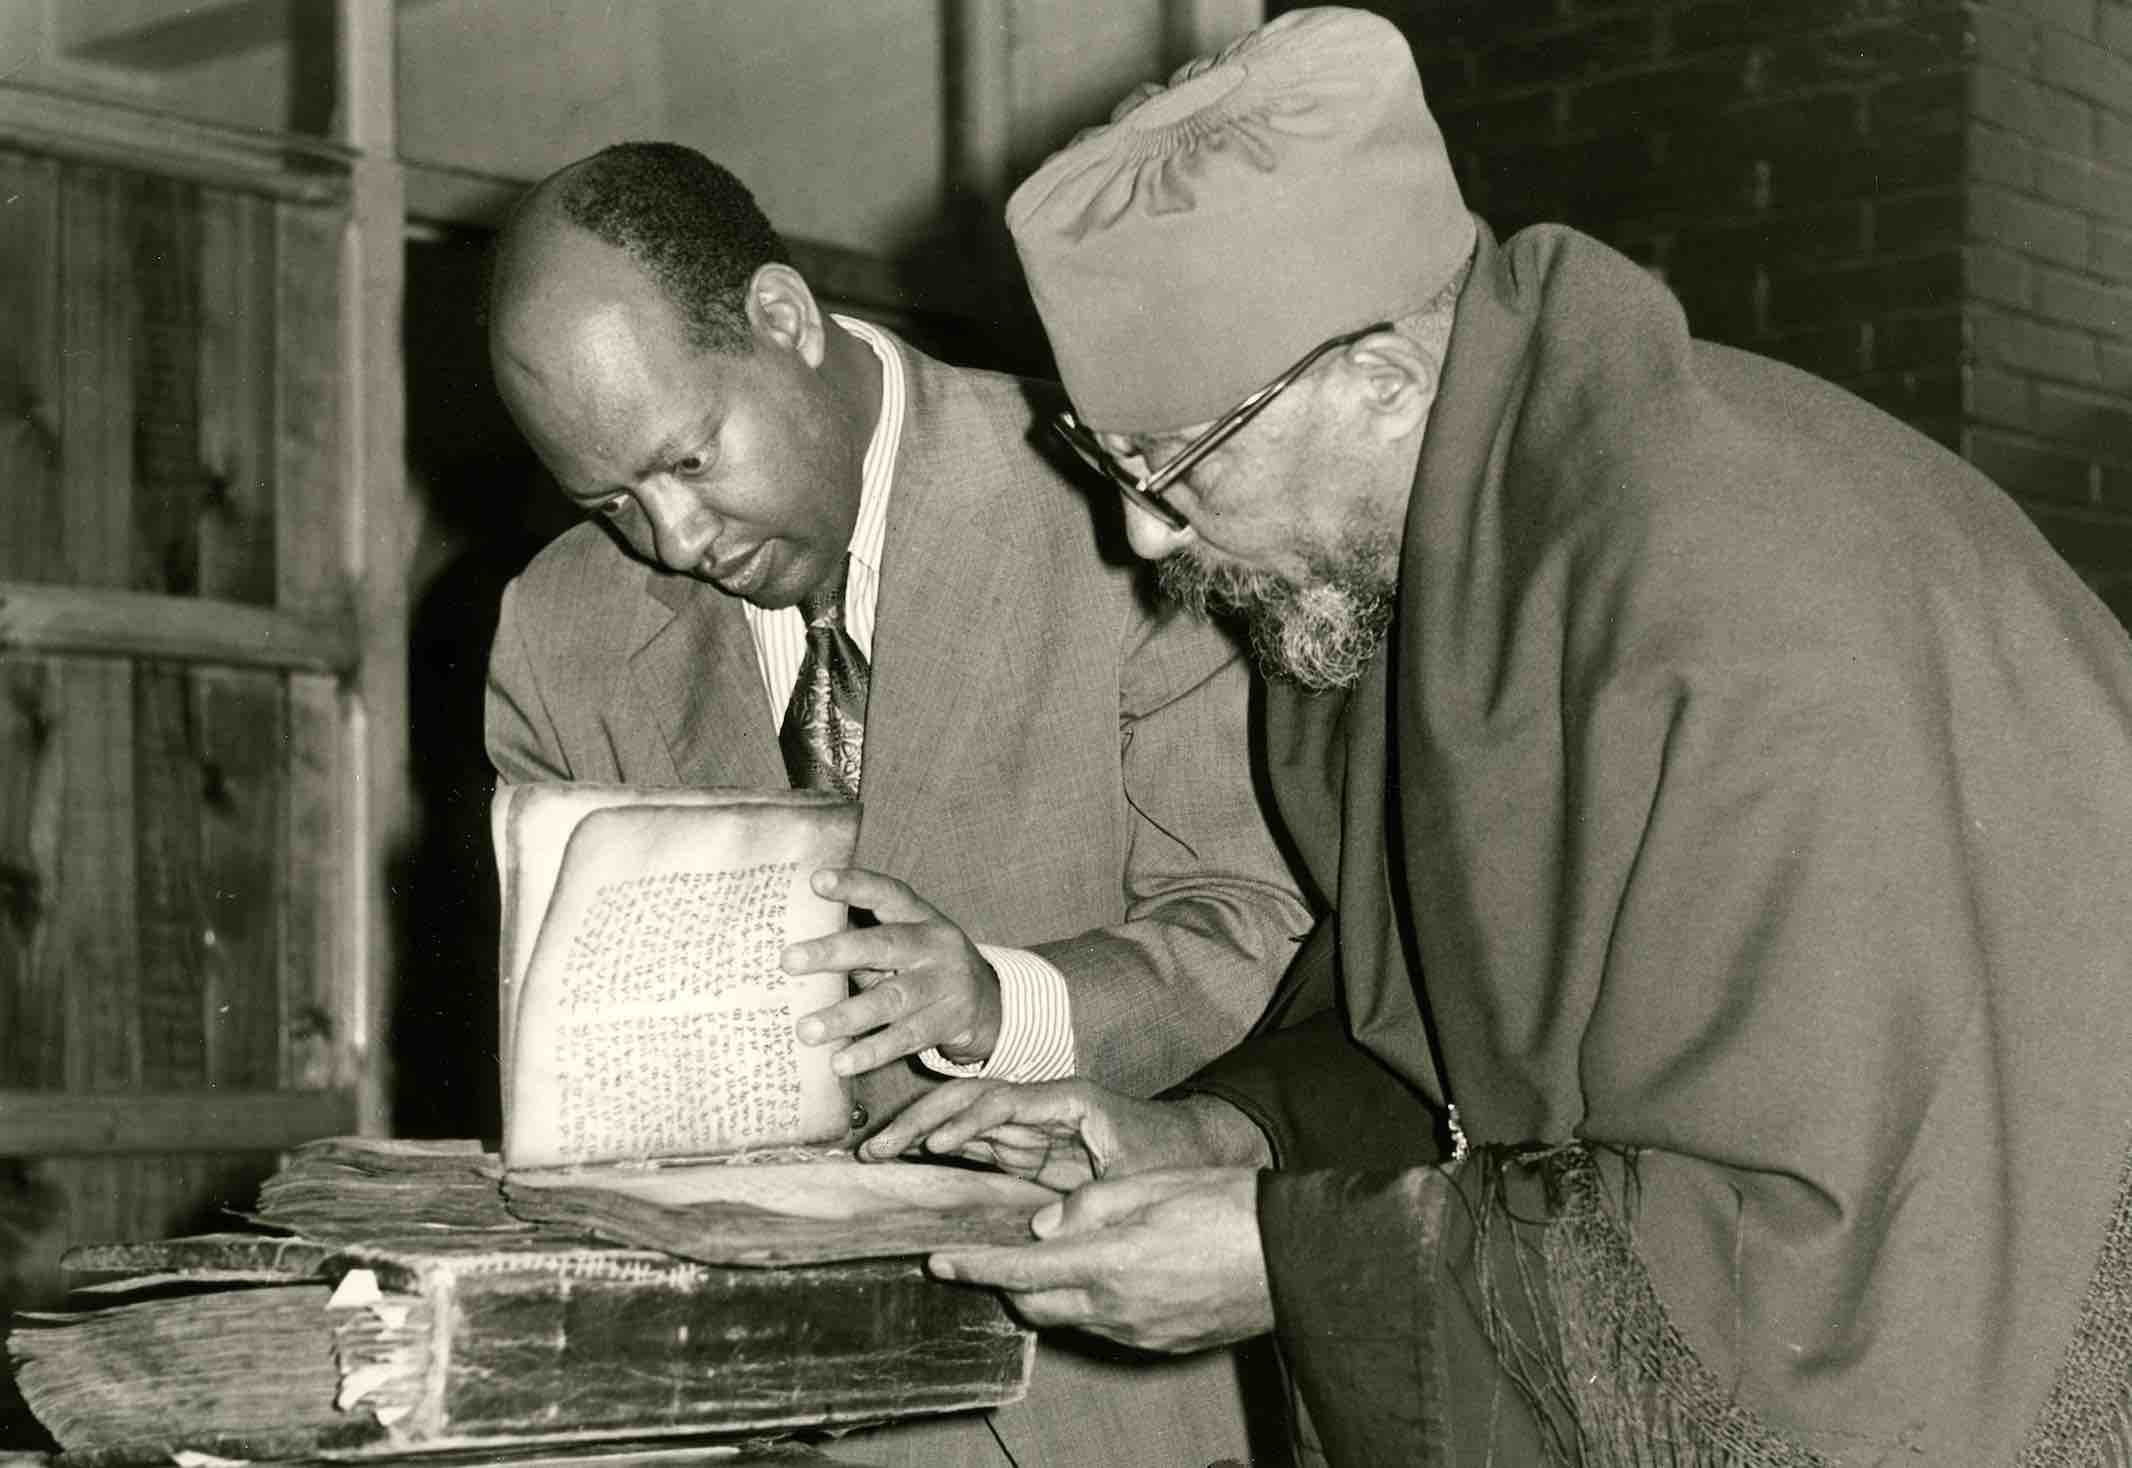 In 1974, Dr. Sergew Hable Selassie (left) shows an EMML manuscript to the patriarch of the Ethiopian church, Abuna Theophilos in Addis Ababa